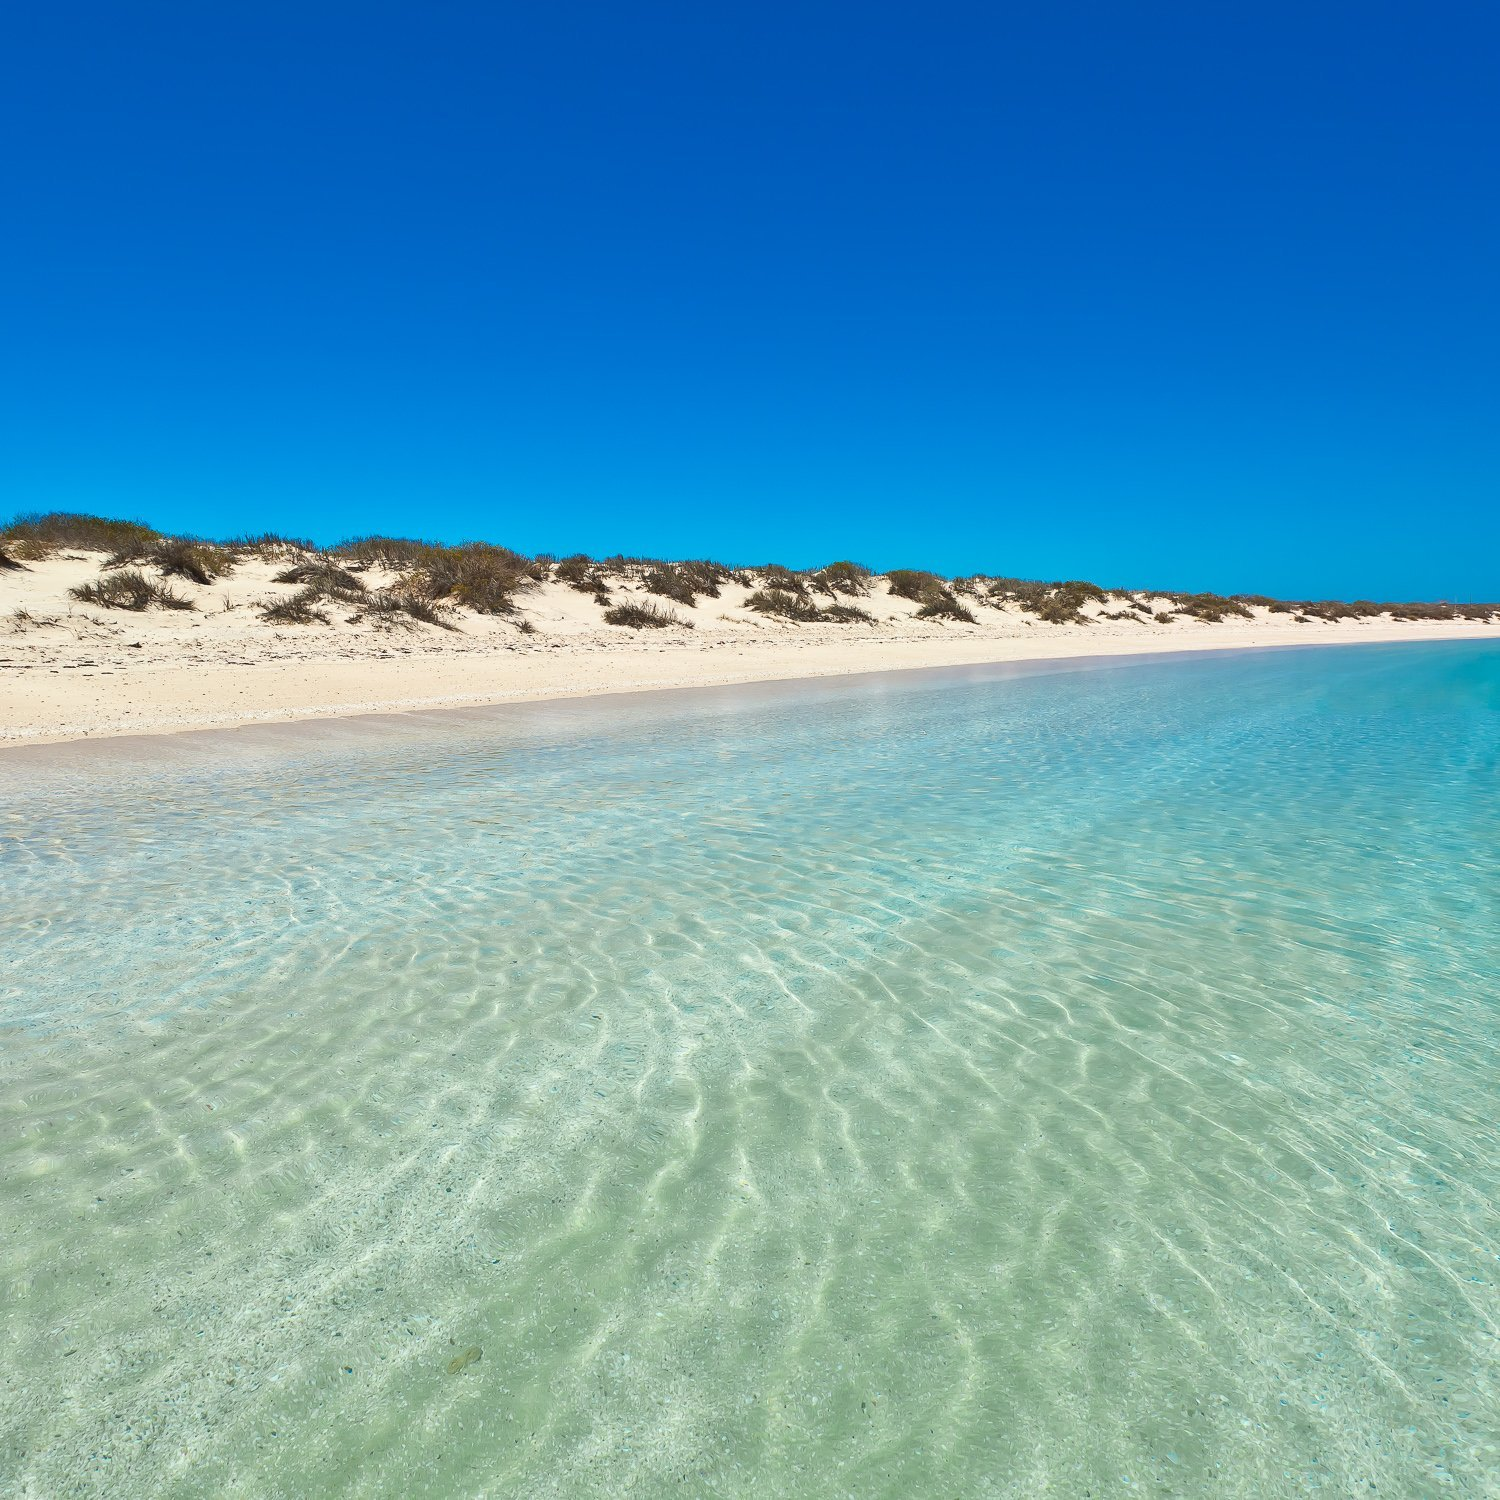 Wish-you-were-here_Beach_Rosemary-Island_Dampier-Archipelago_Dampier_Pilbara_North-West_WA_Colour